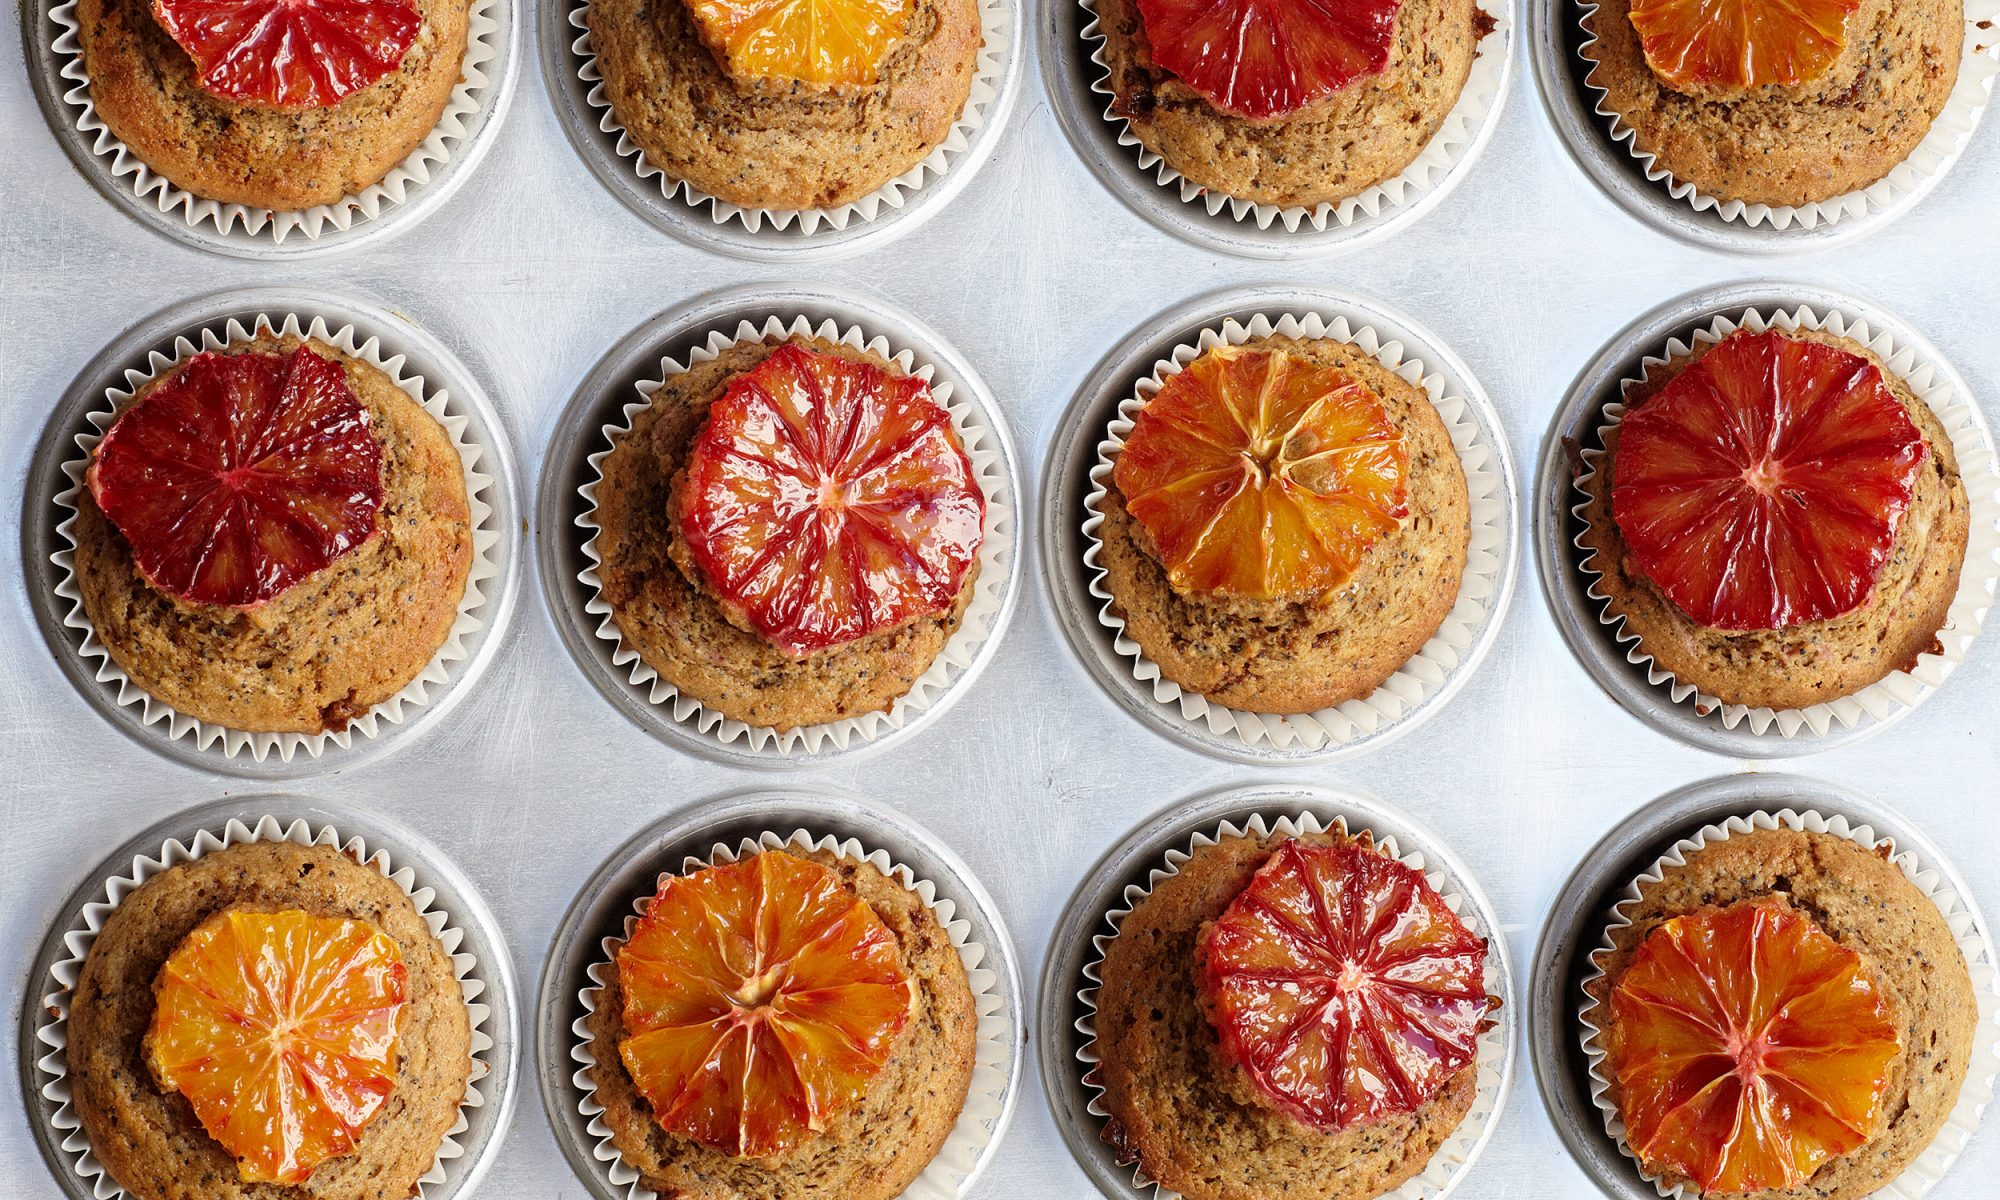 Go Loco for Orange and Coconut Poppyseed Muffins